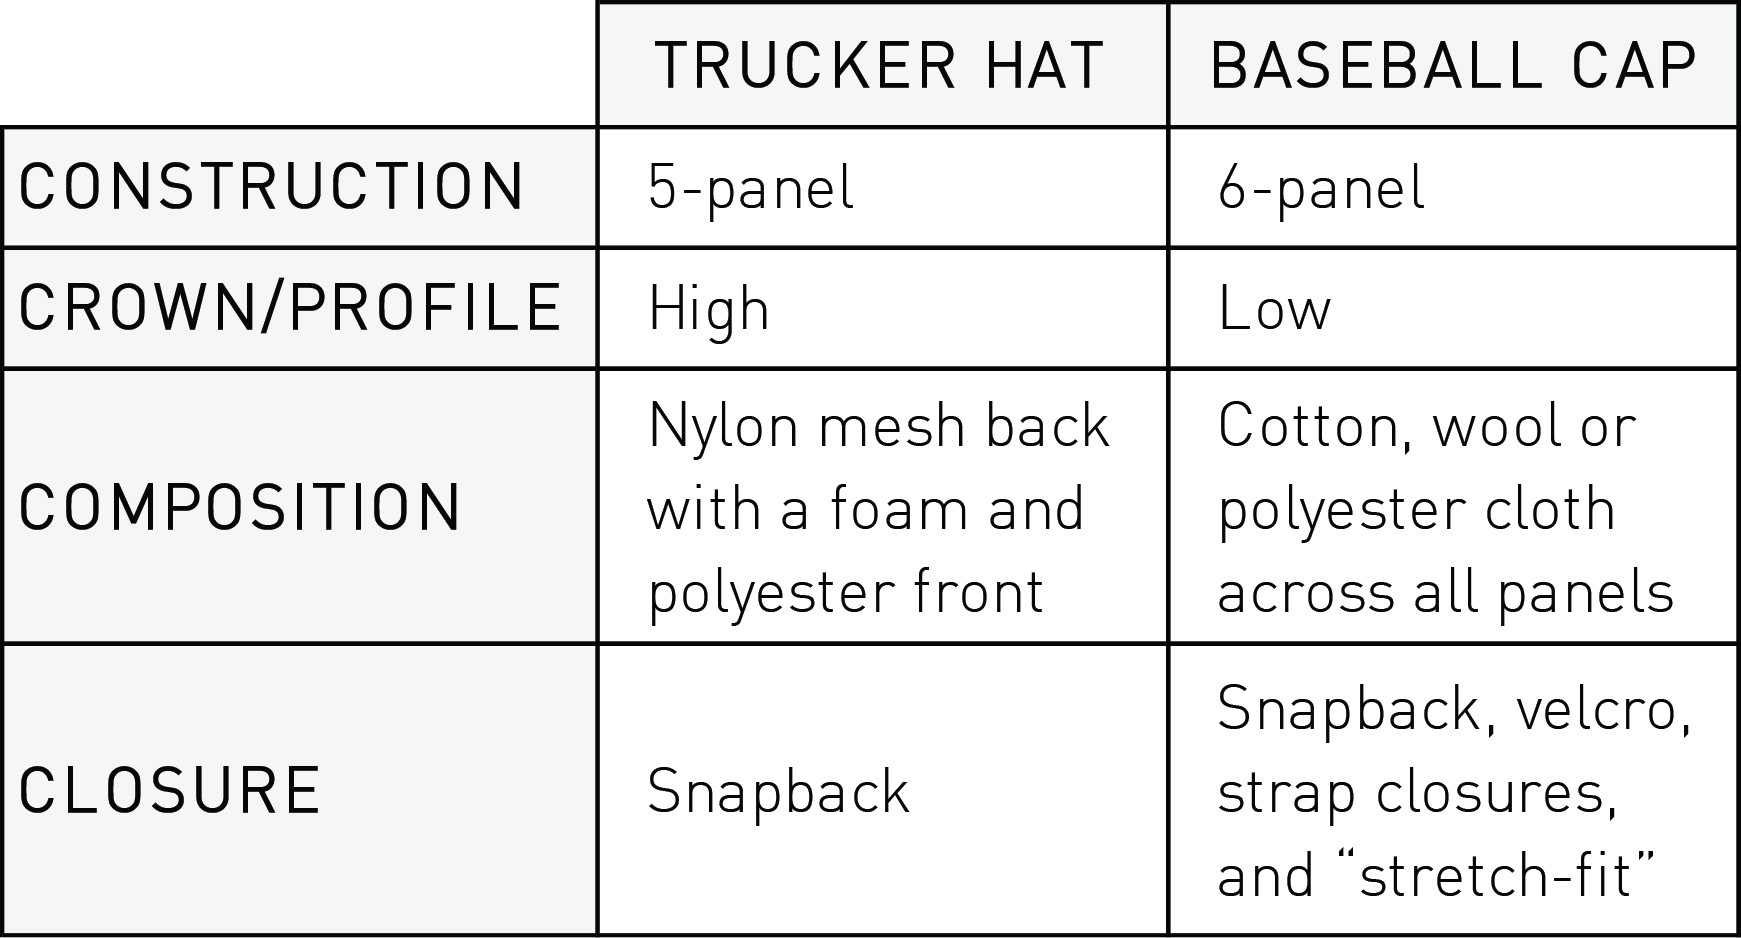 Difference between a trucker hat and a baseball cap